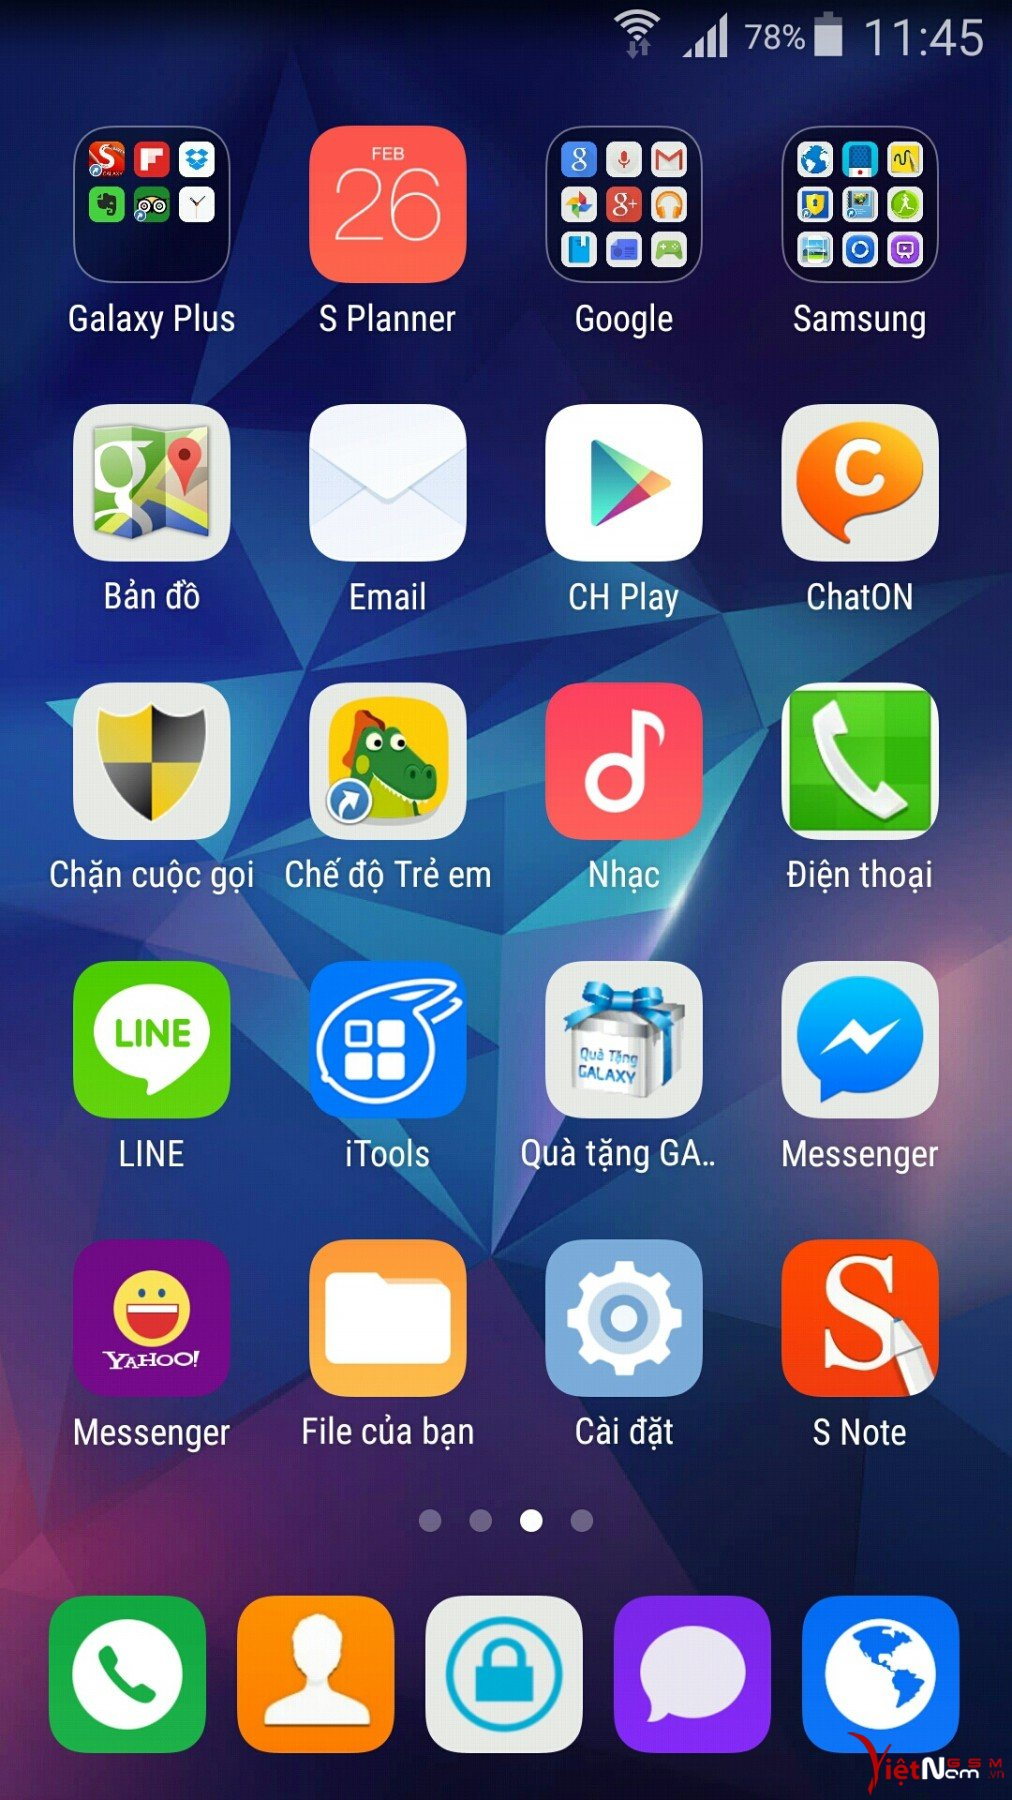 Screenshot_2014-12-27-11-45-31.jpg